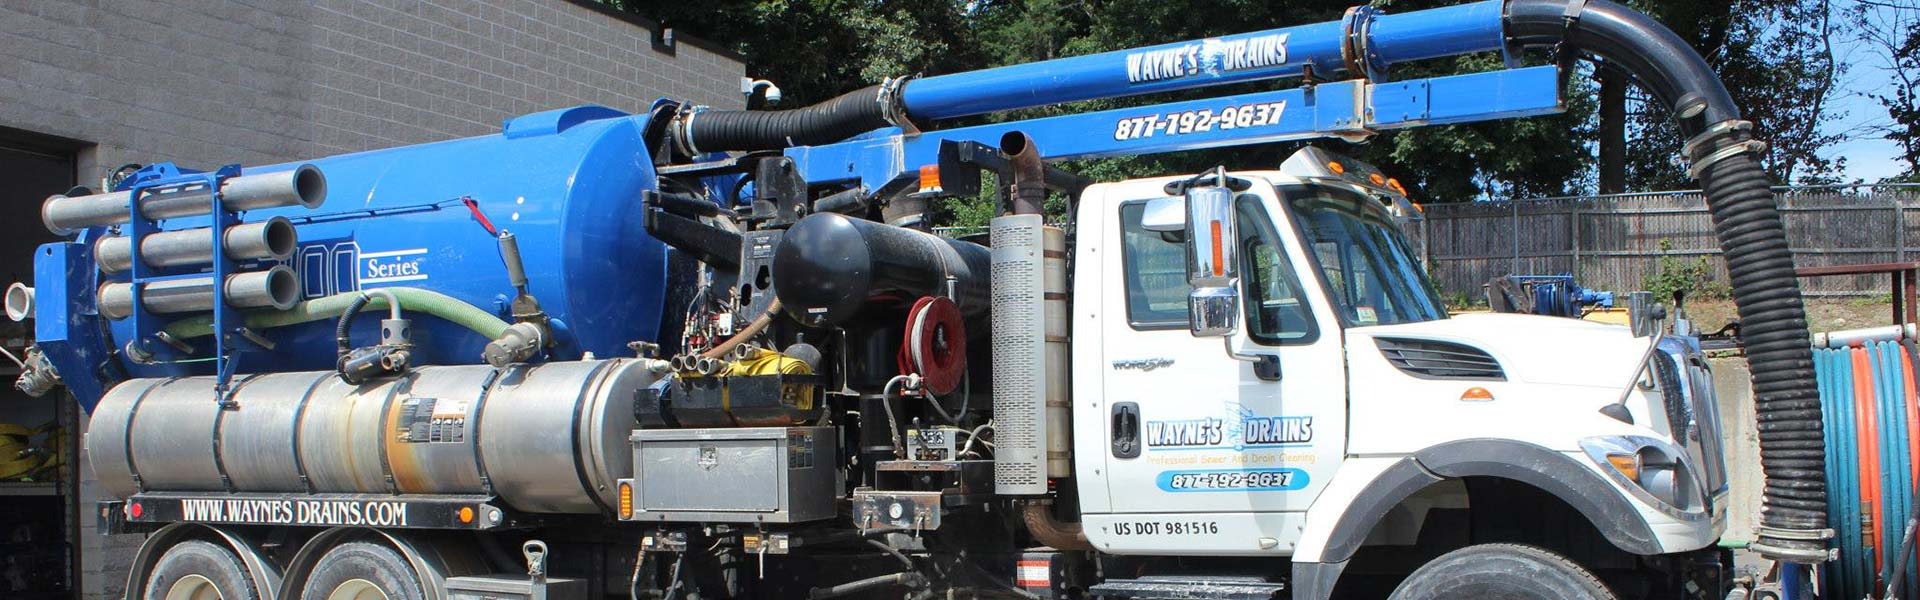 Commercial Septic Tank Cleaning Burlington, MA, Commercial